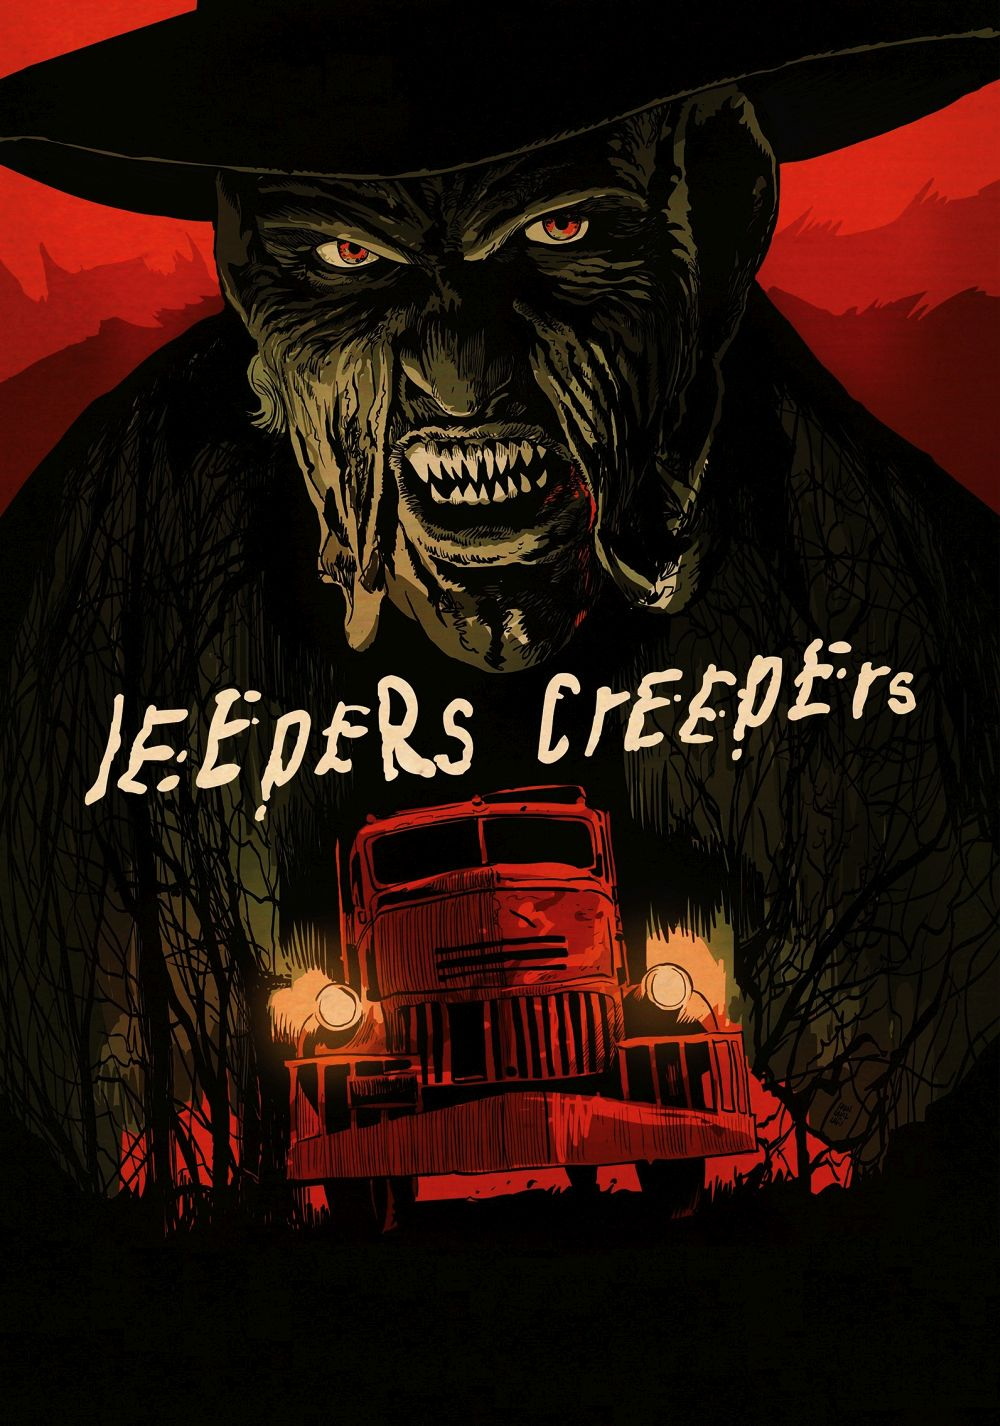 jeepers-creepers-56d60504ee1e9